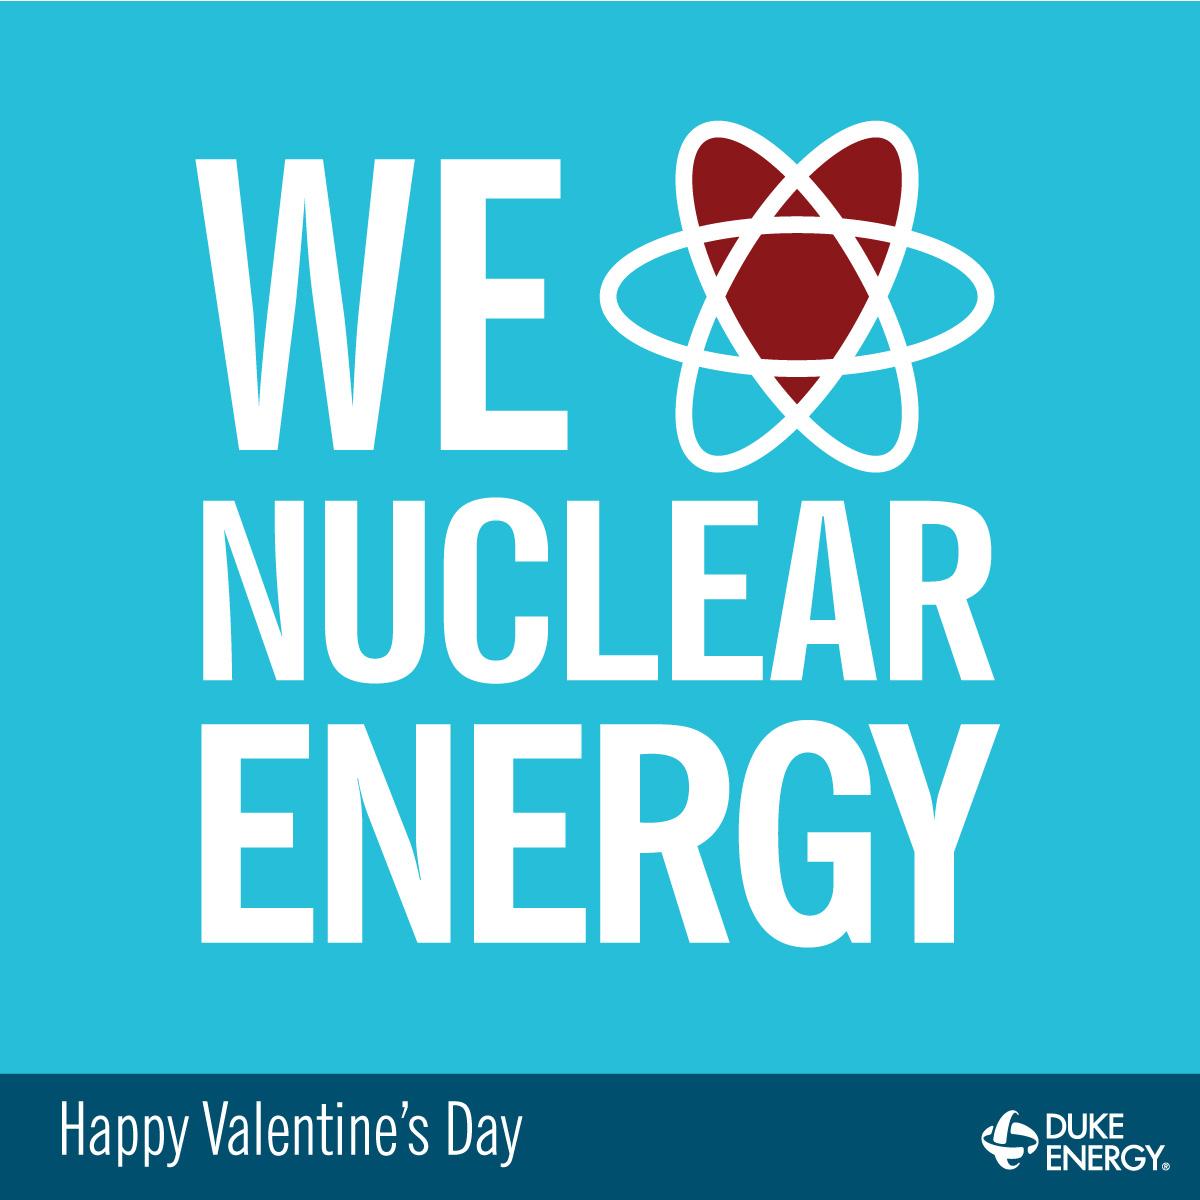 We love nuclear energy